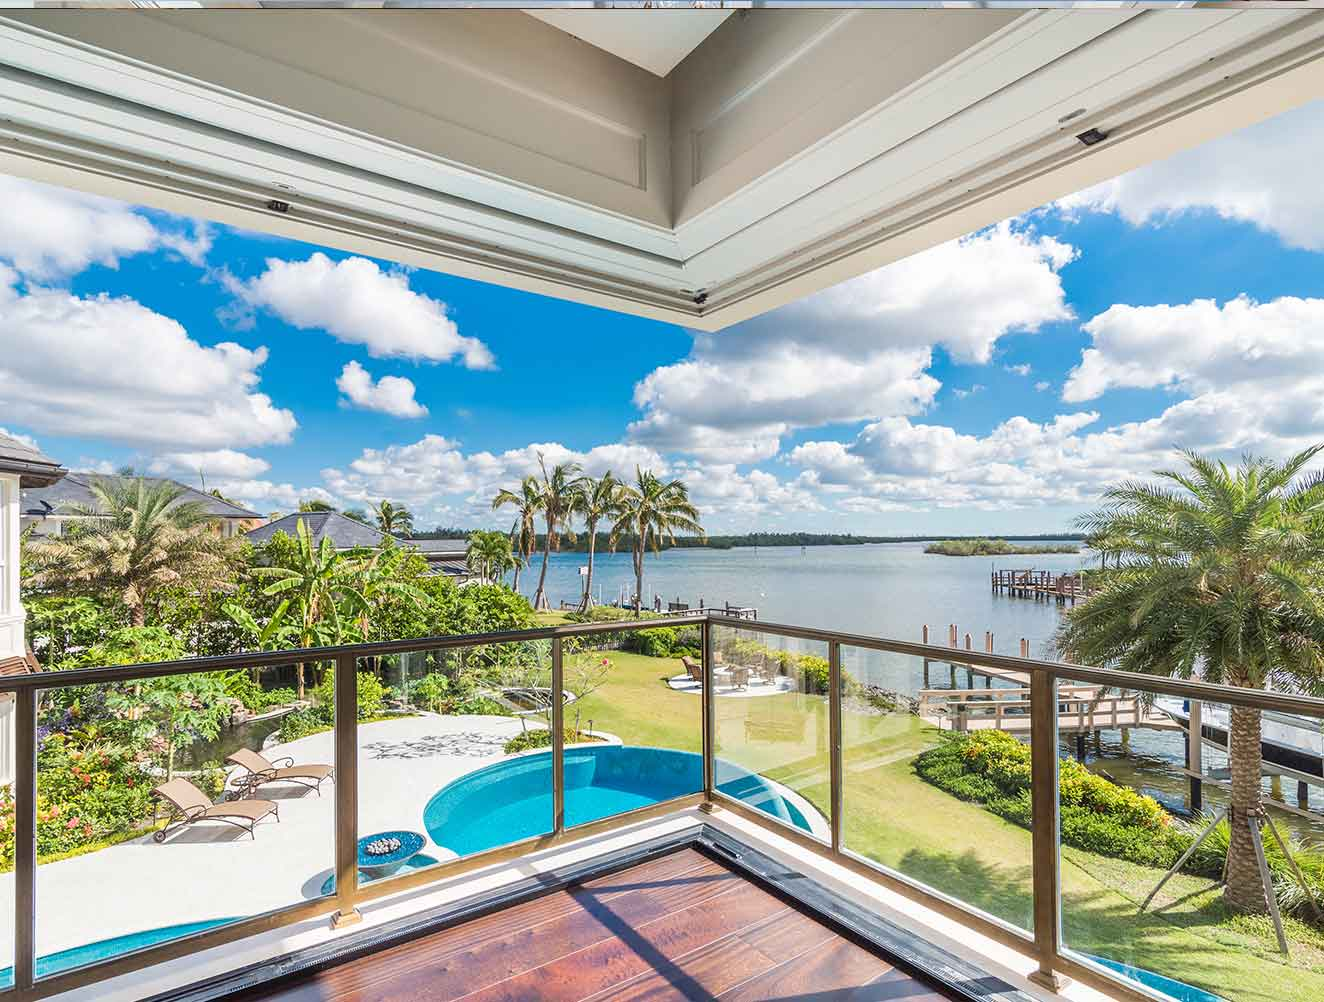 Waterfront views highlighted by architectural features at Nelson's Walk Residence in Naples Florida, single family home designed by Kukk Architecture & Design Naples Architecture Firm